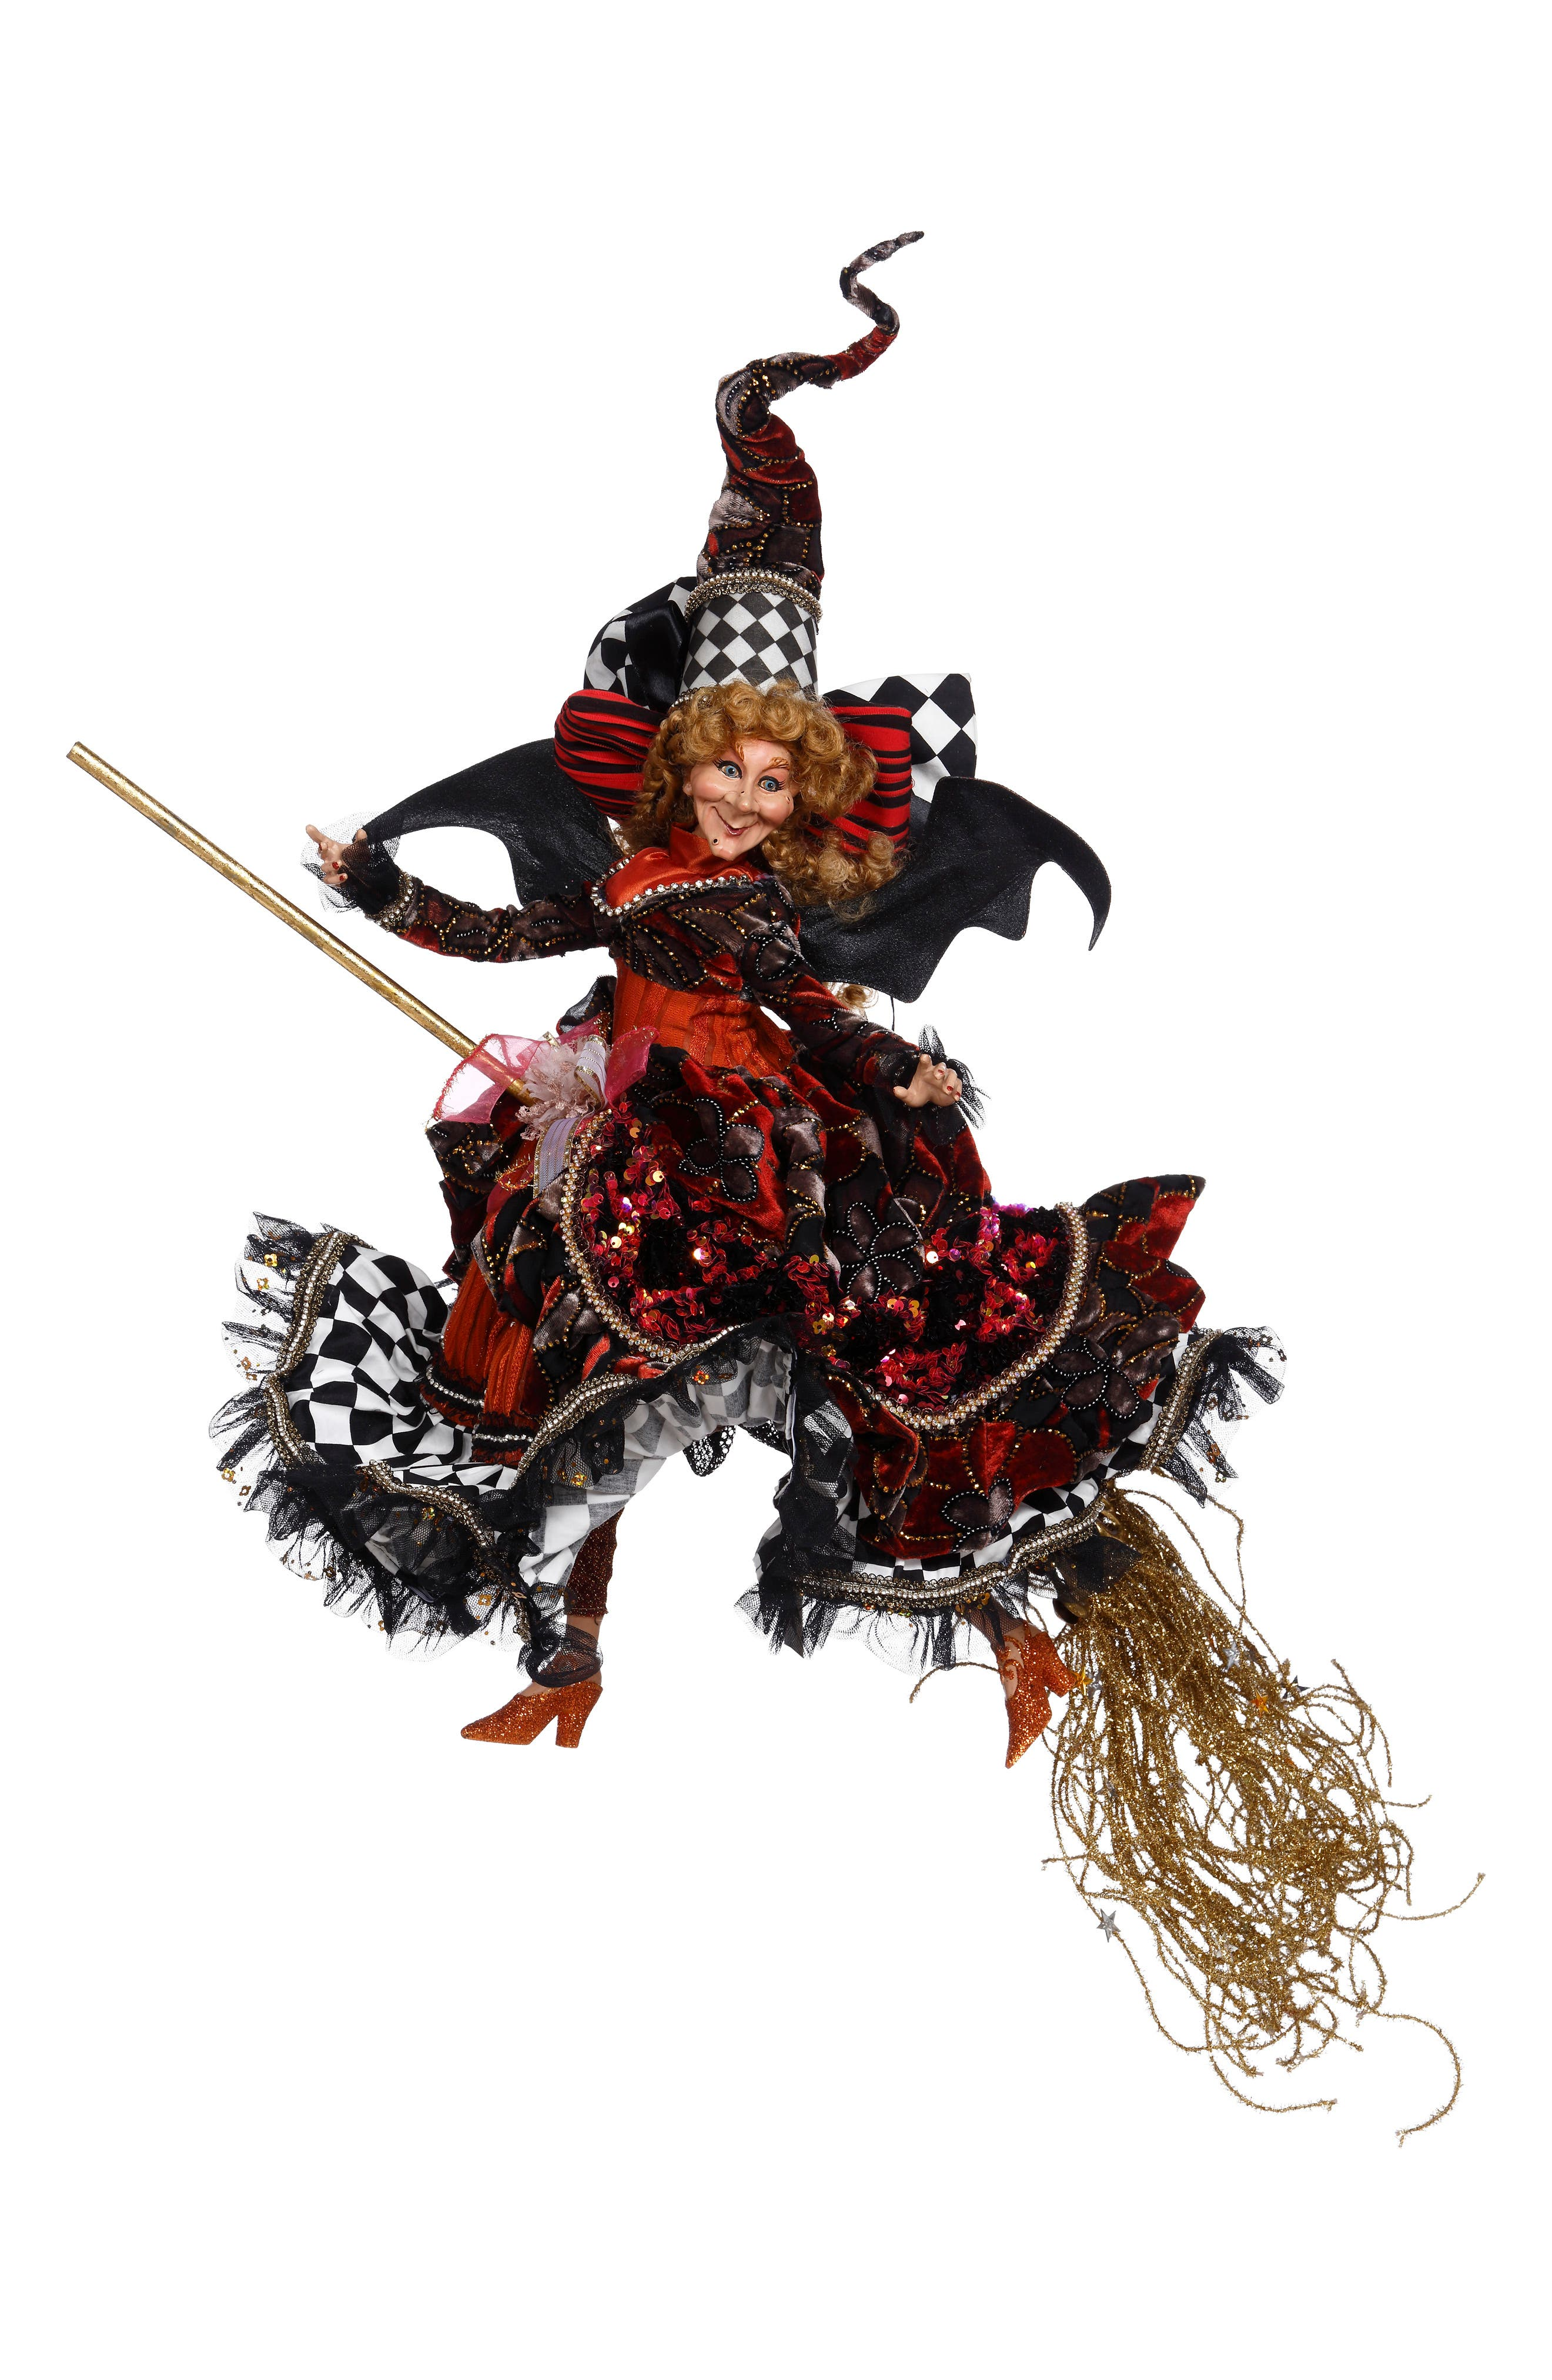 A gleeful witch decked out in ruffles, sequins and crystals is on her way to stir up some wicked good fun. Wearing a curly, pointed hat and perched on a glittery broom, this limited-edition decorative doll is a treat for any true Halloween lover and is so beautifully detailed that it\\\'s sure to become a future family heirloom. Style Name: Mark Roberts Flying Witch On A Mission Decoration. Style Number: 6070873. Available in stores.